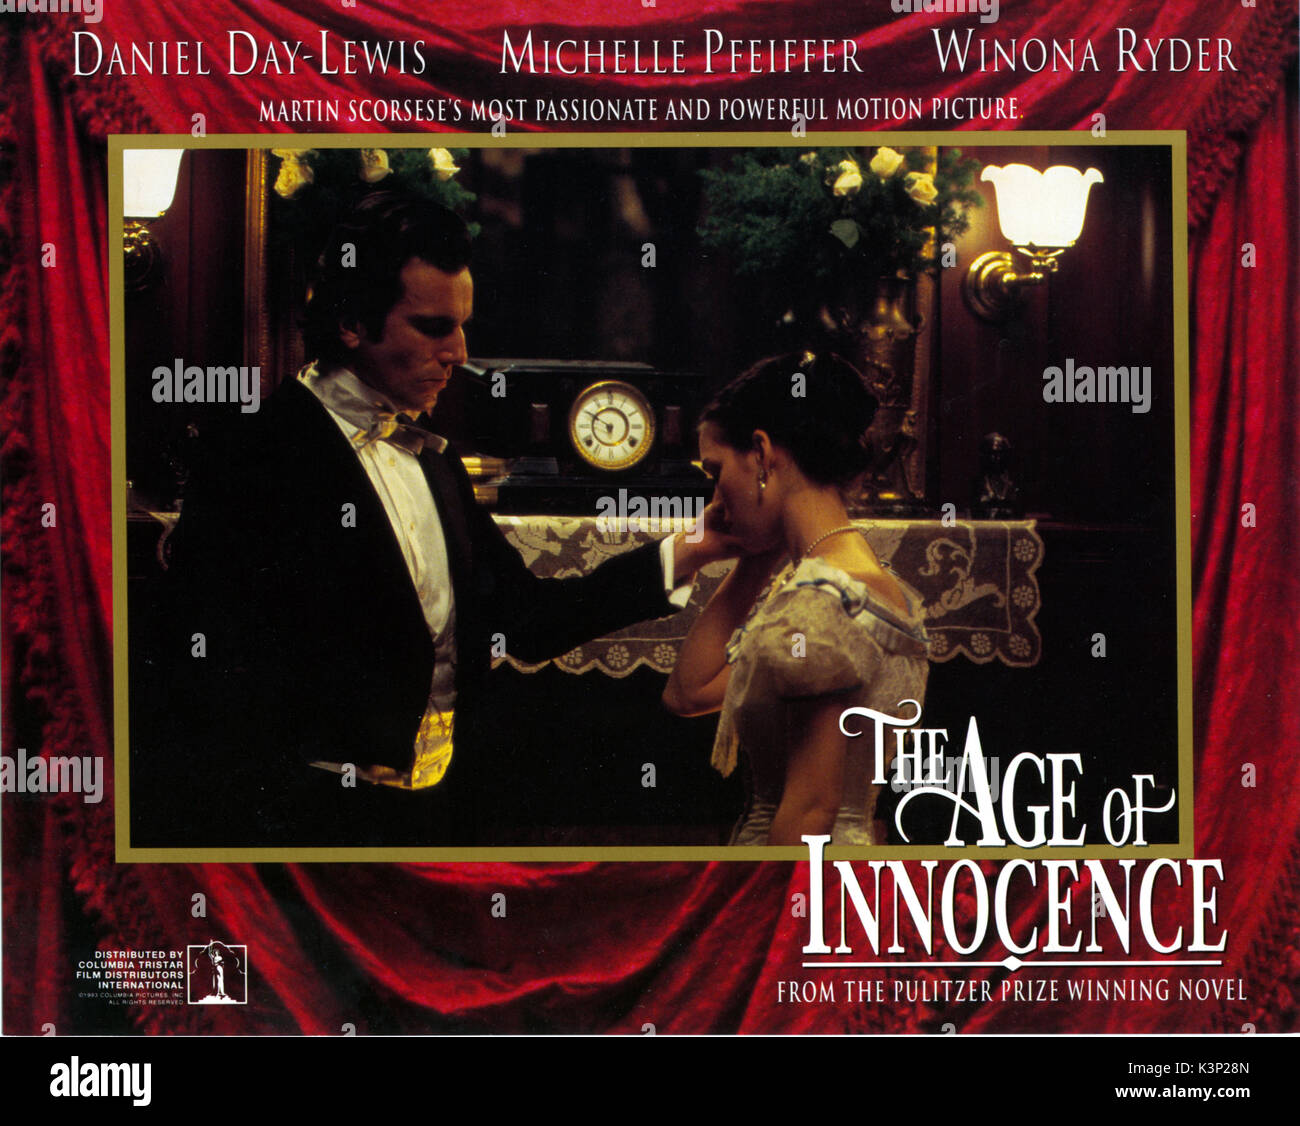 The age of innocence Daniel Day Lewis movie poster